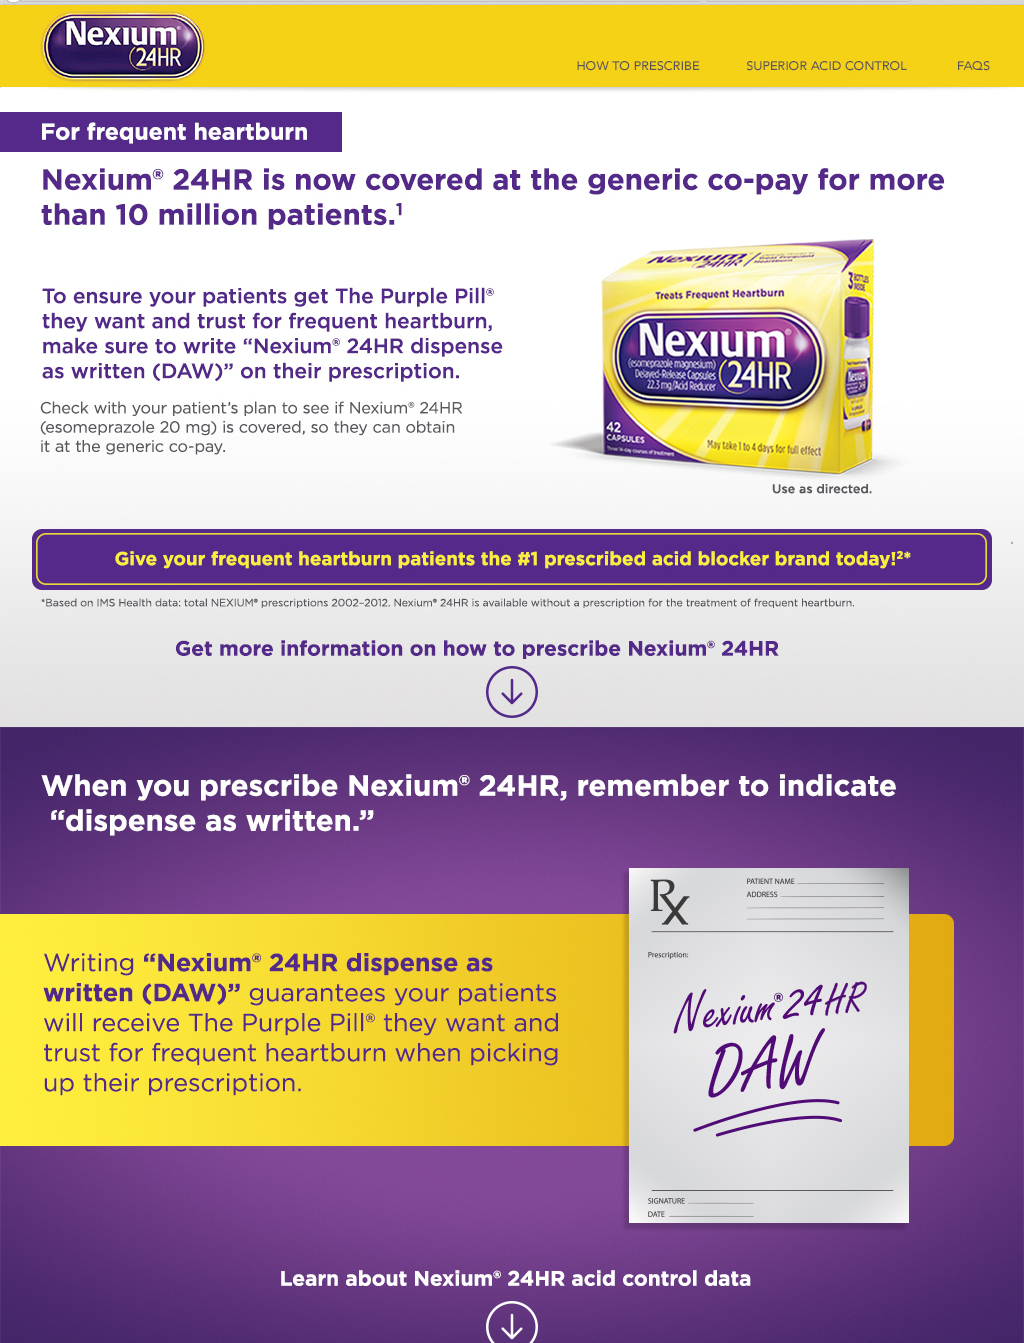 learn about prescribing nexium 24hr